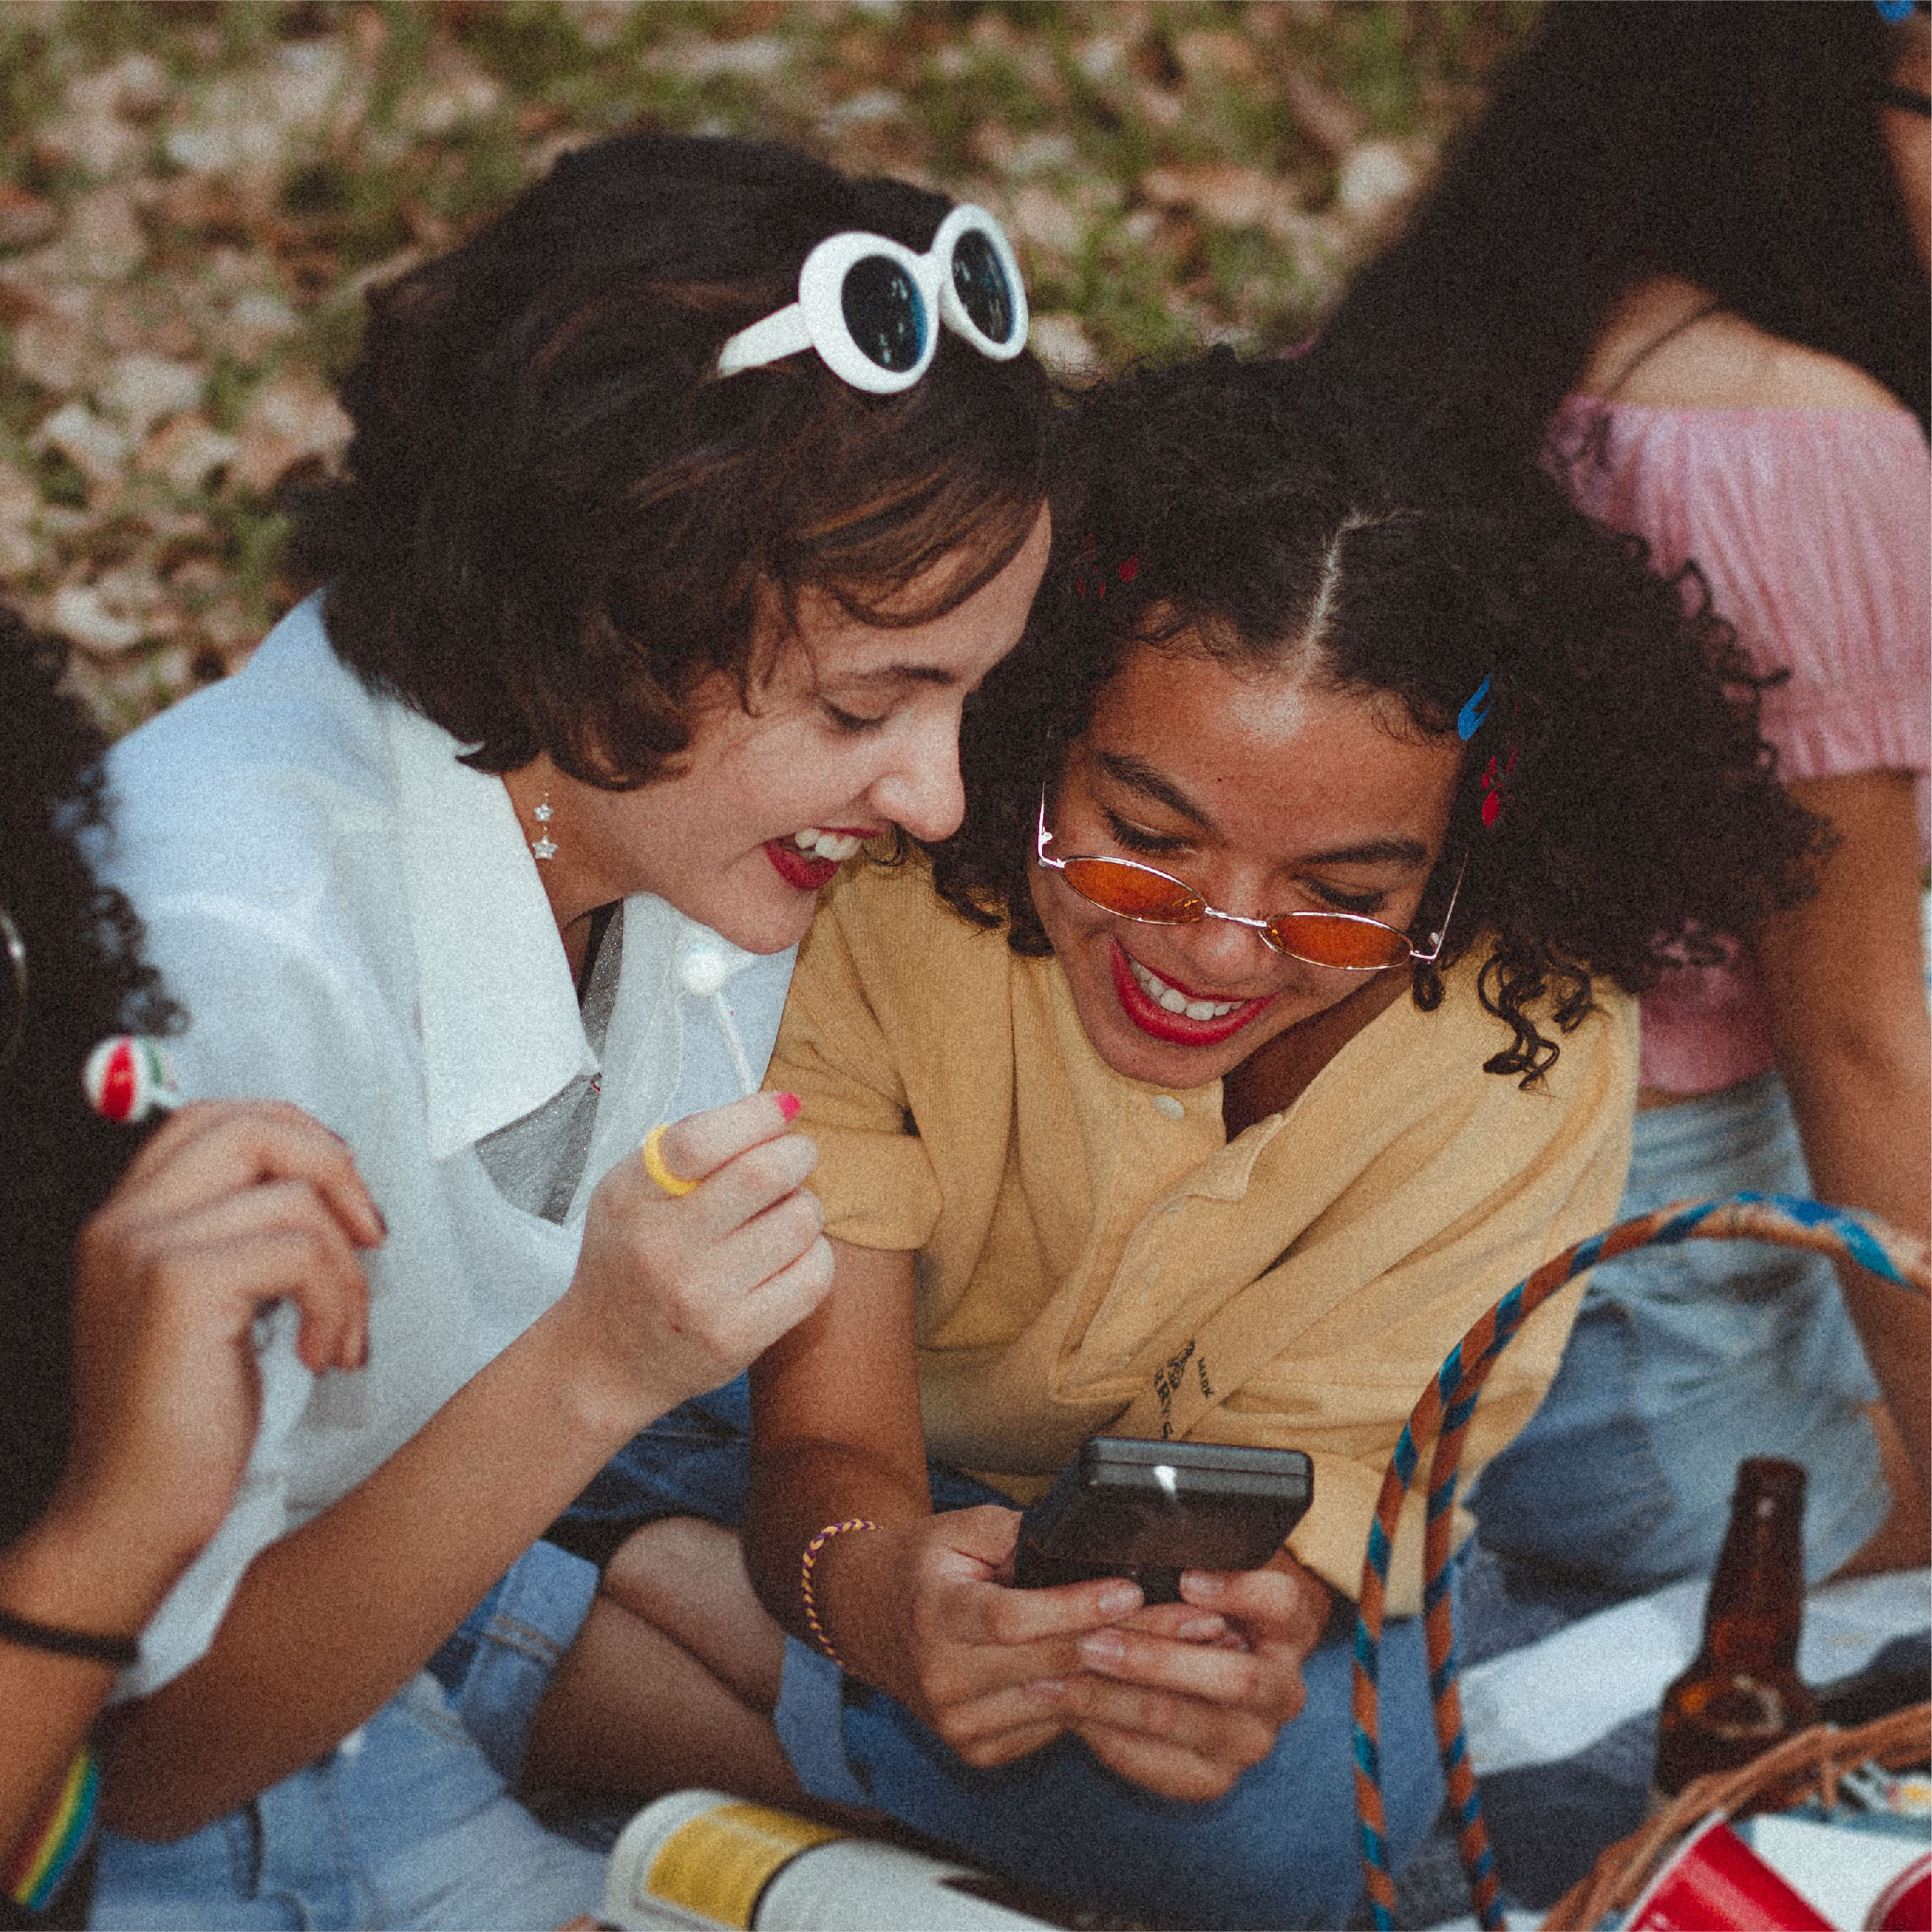 #YouthConnected – In person